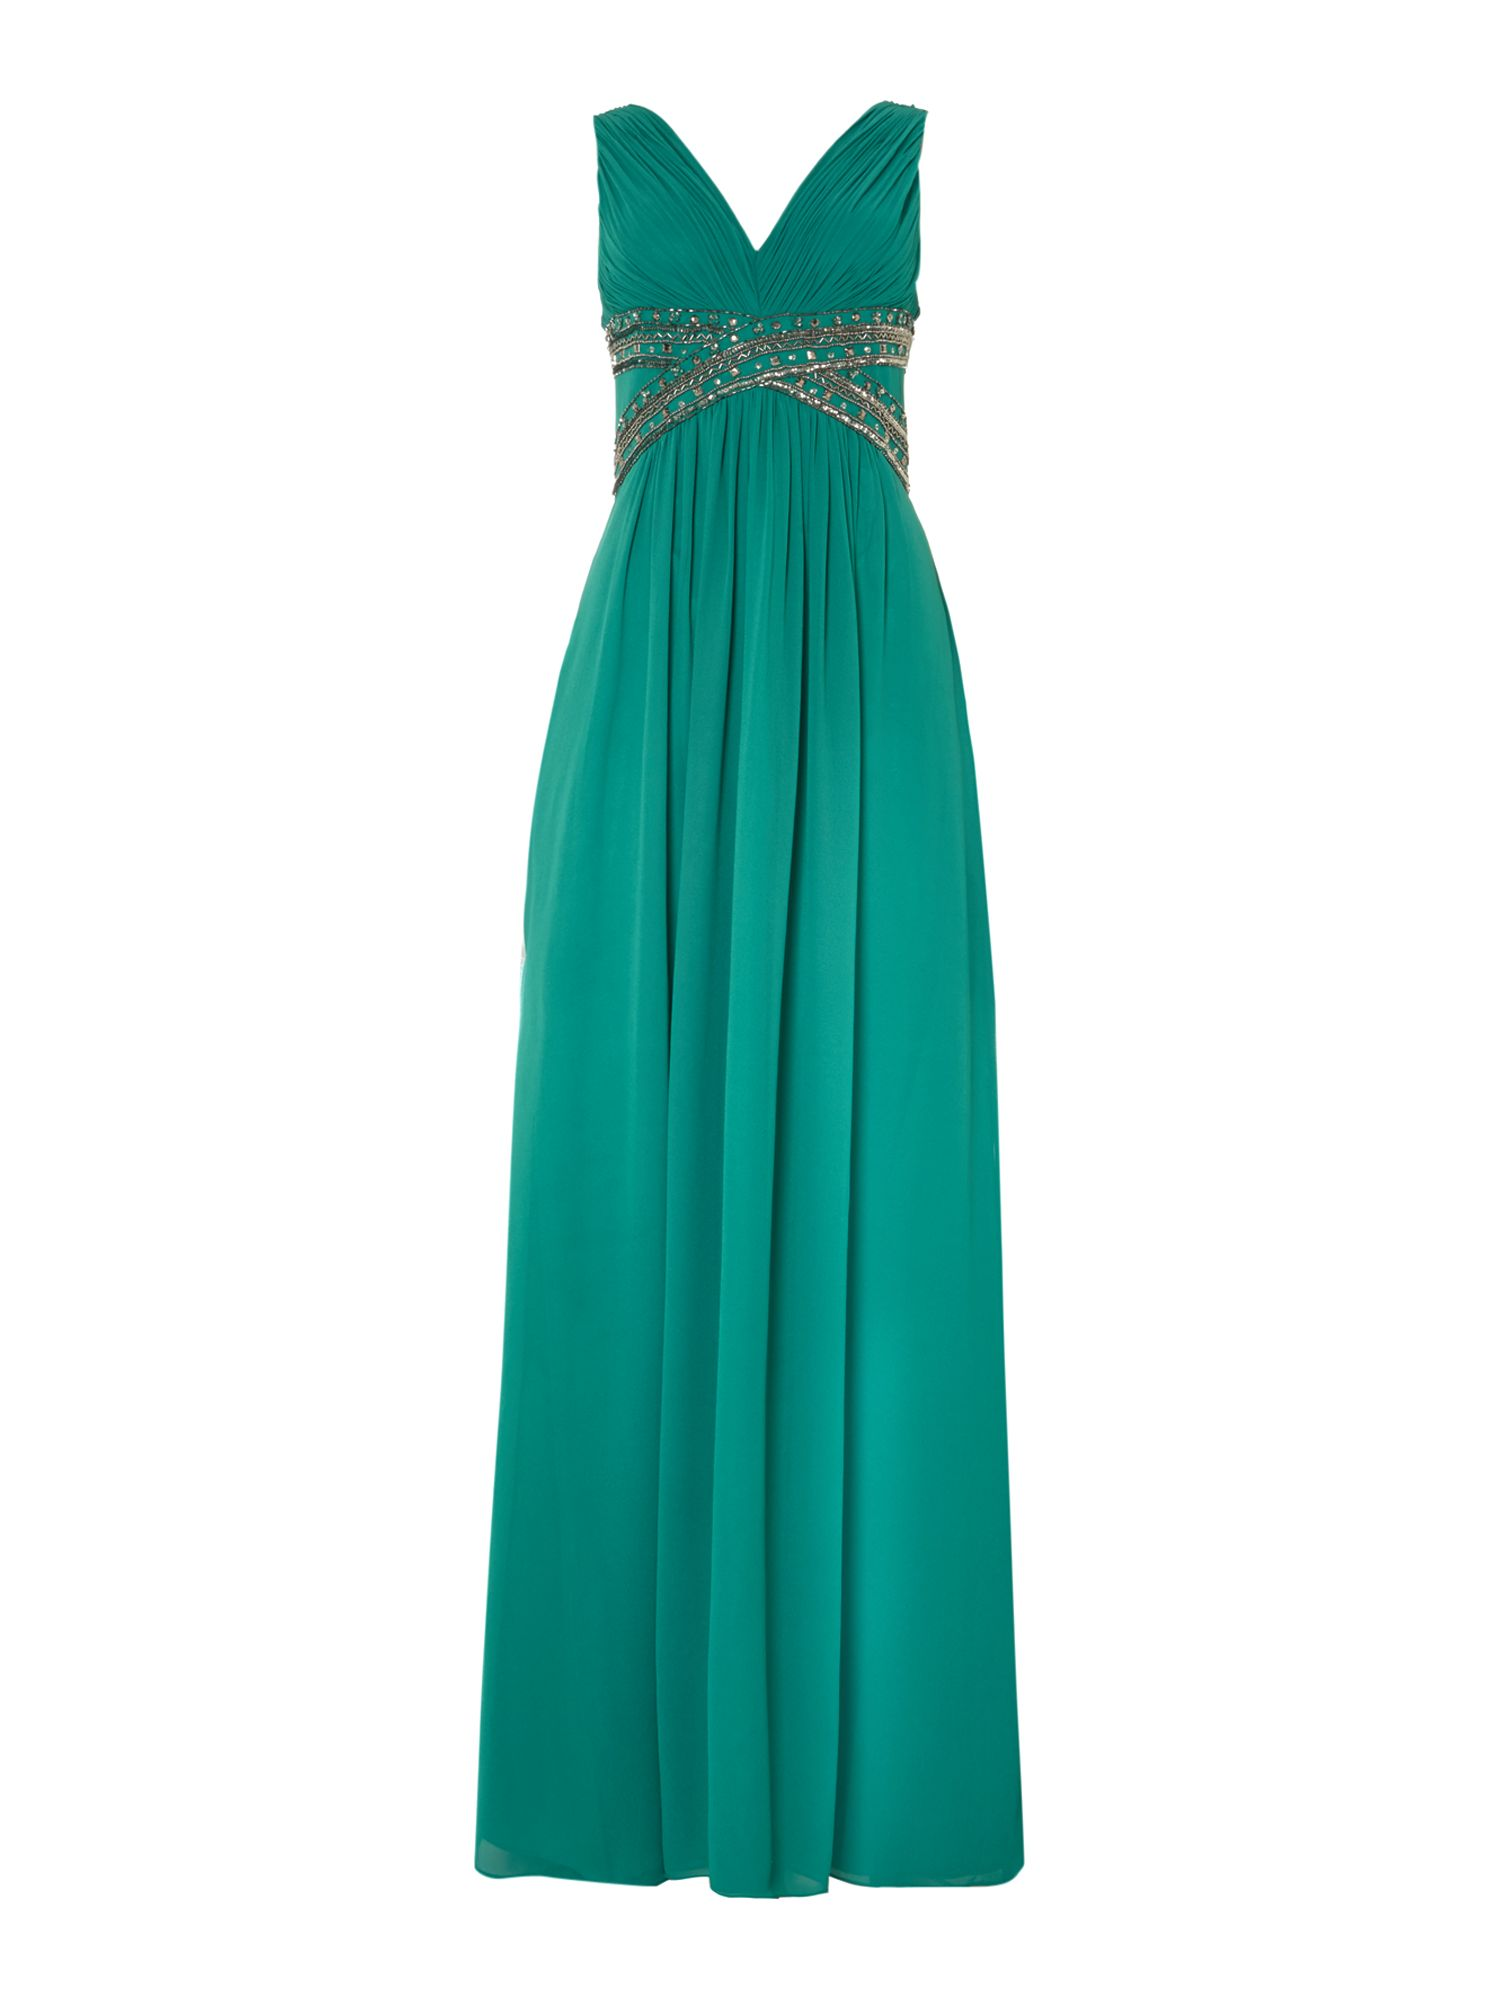 Embellished chiffon maxi dress